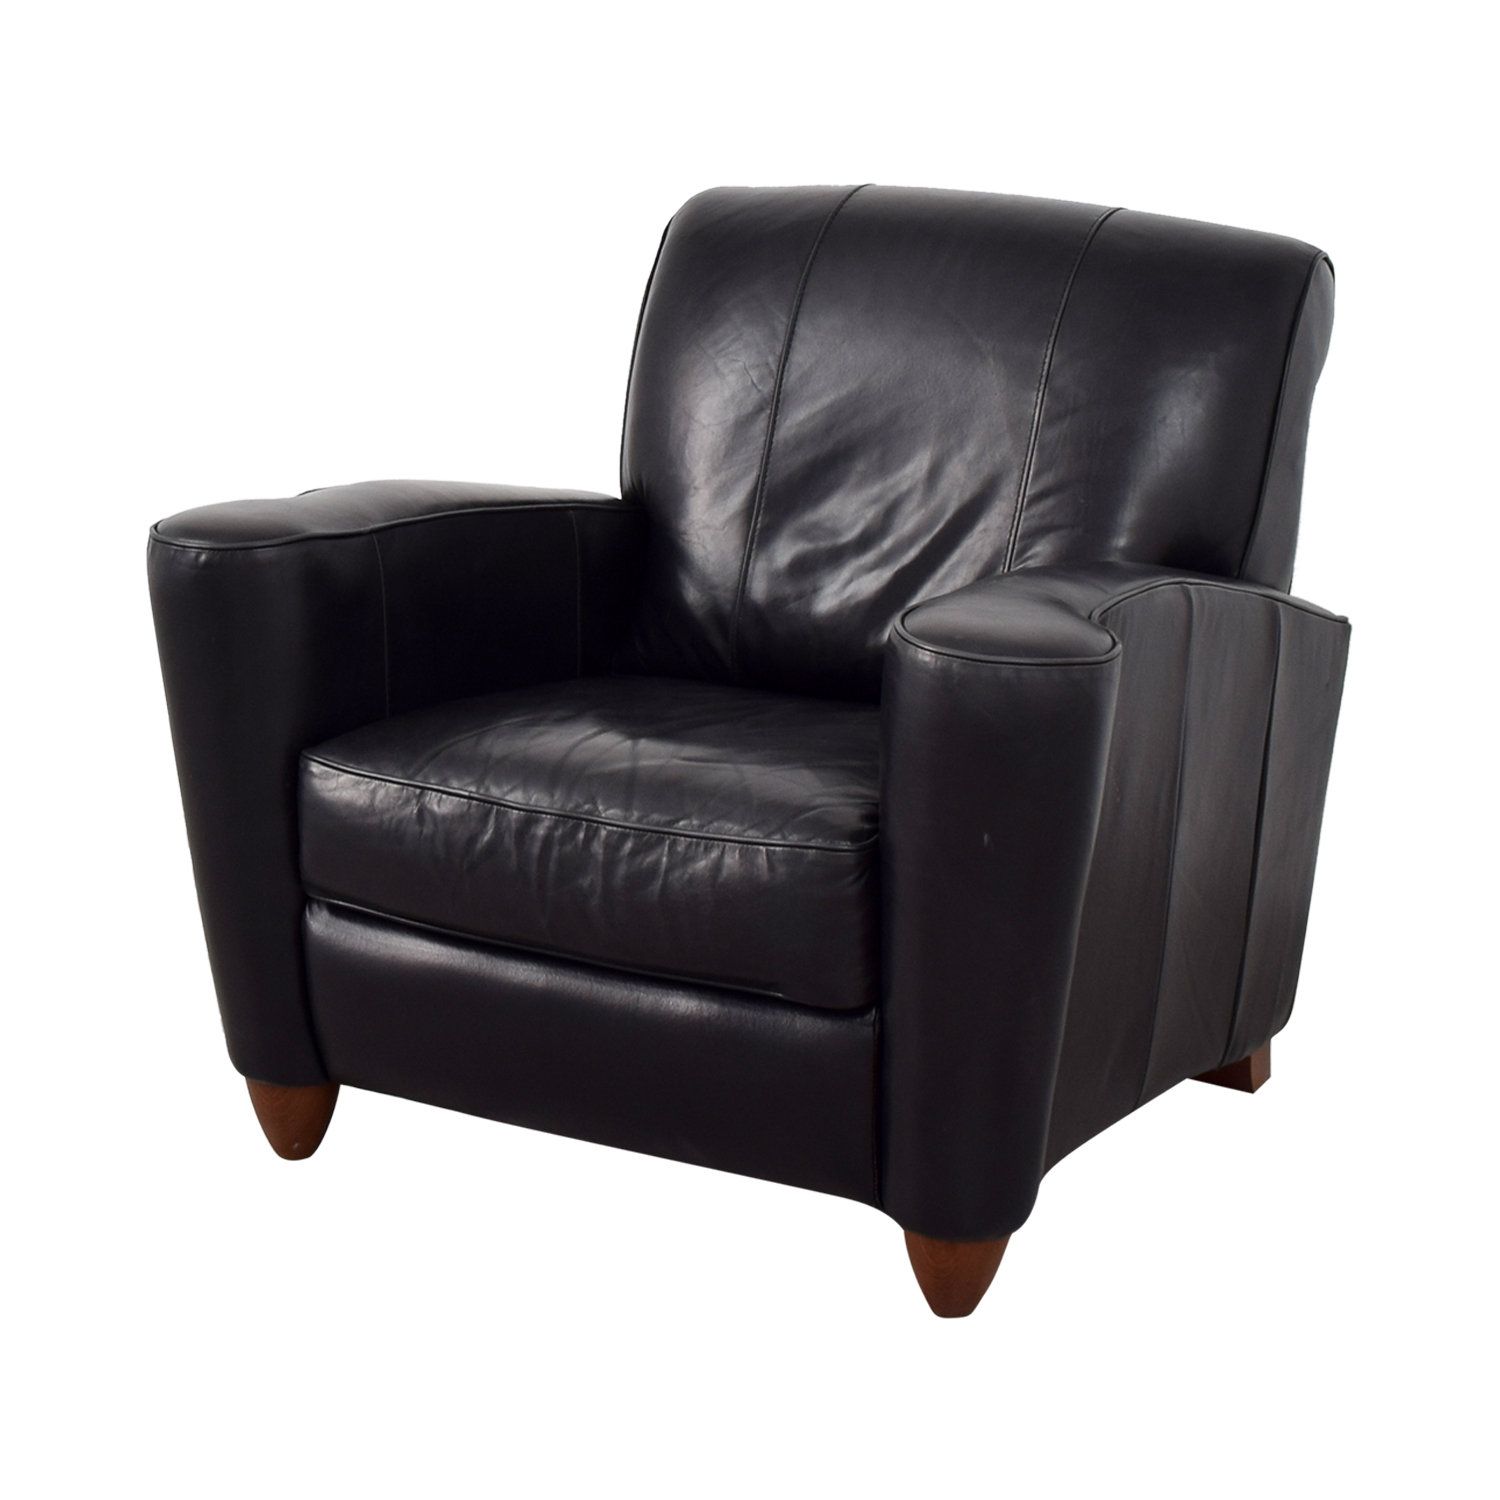 buy Leather Library Reading Chair Accent Chairs